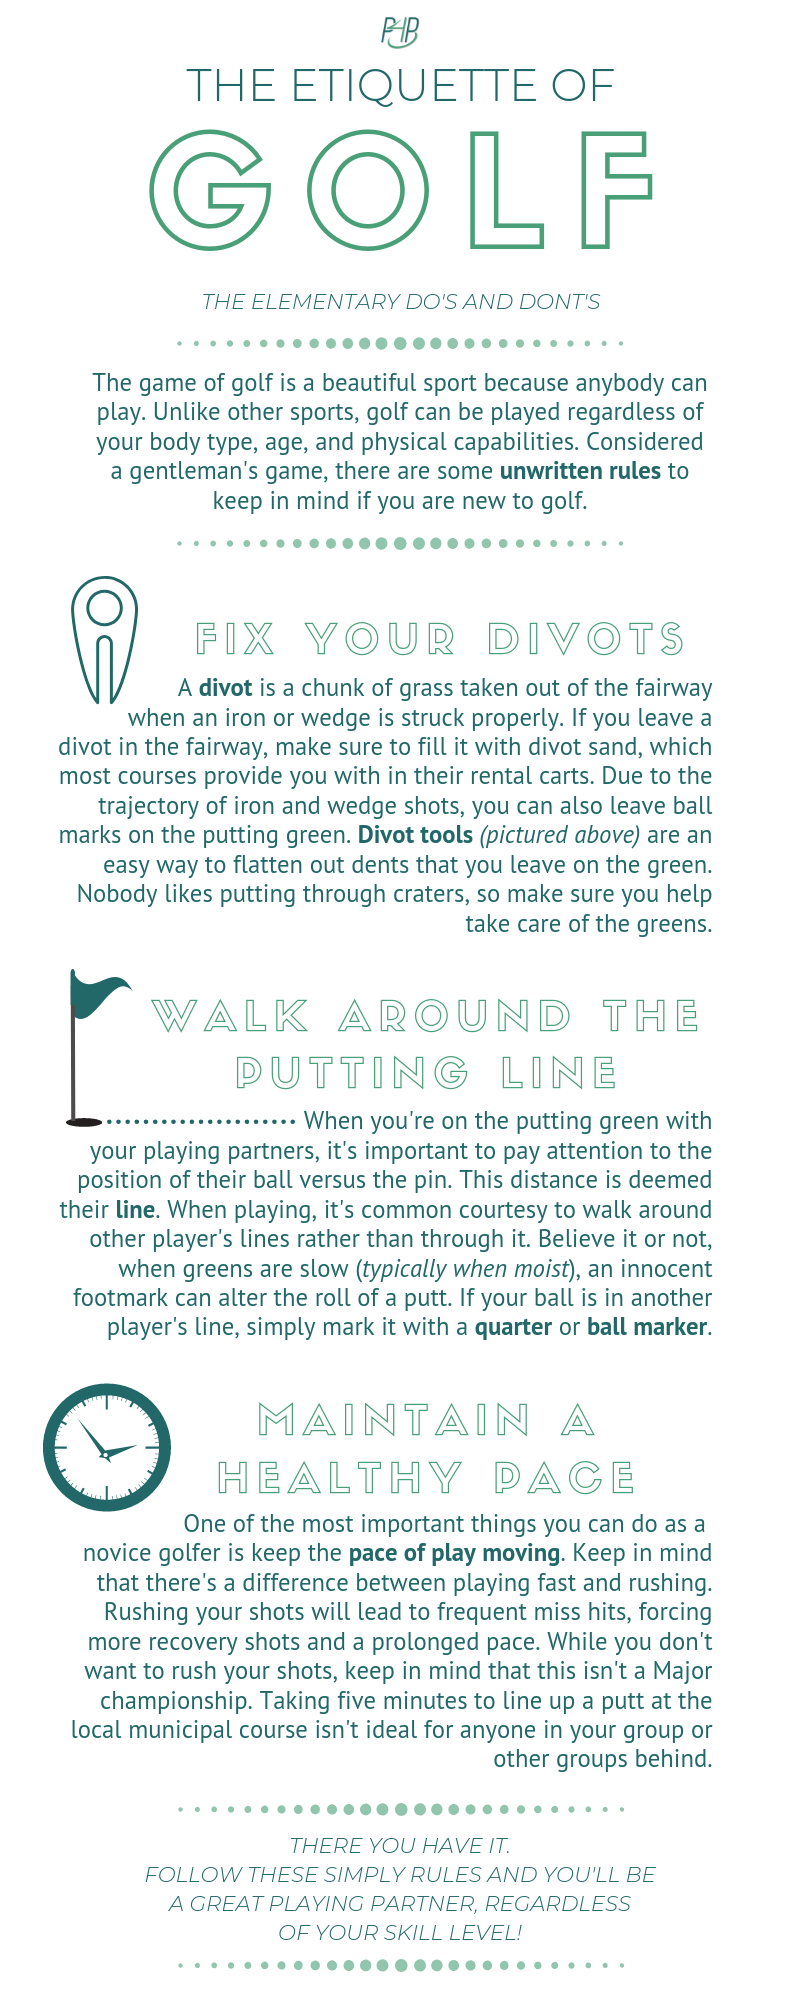 The Etiquette of Golf.png